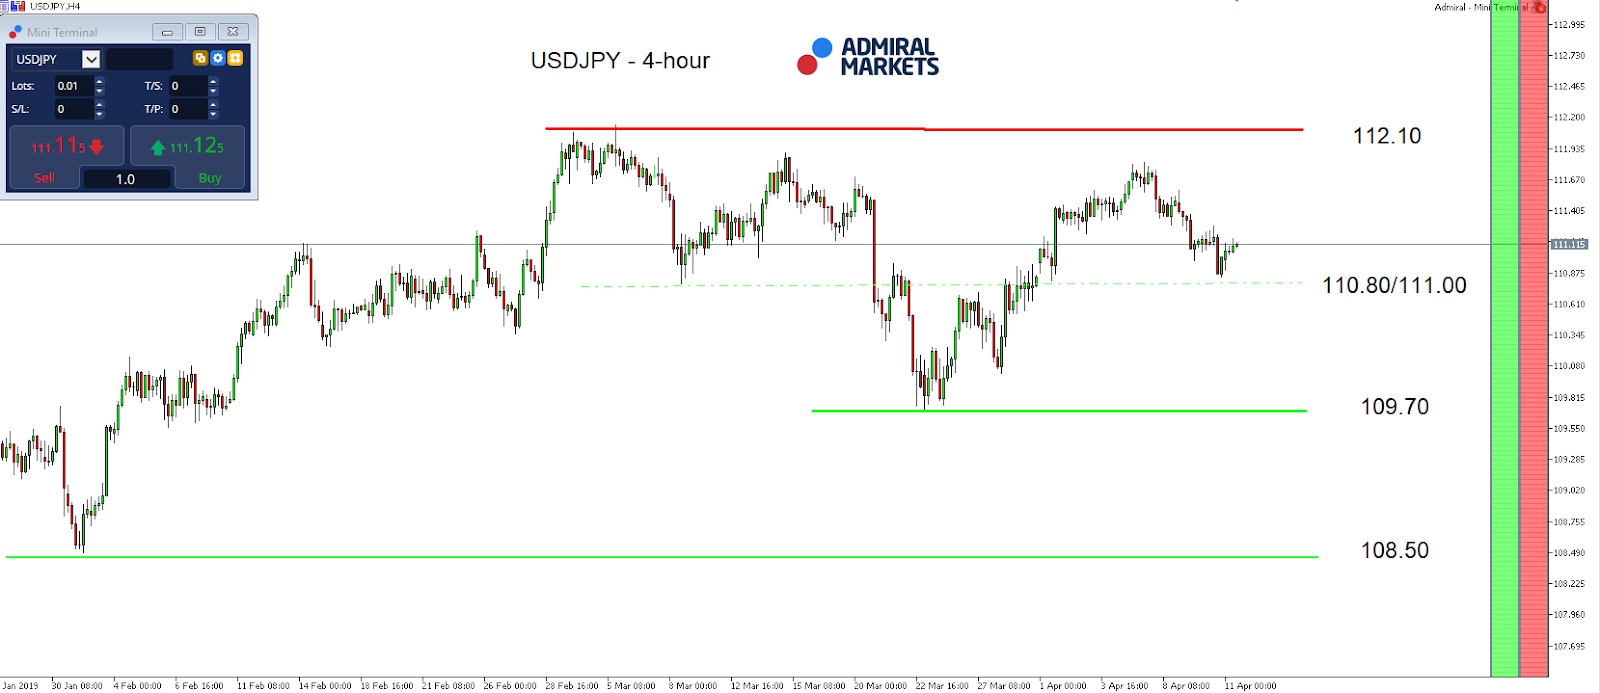 USD/JPY index daily chart